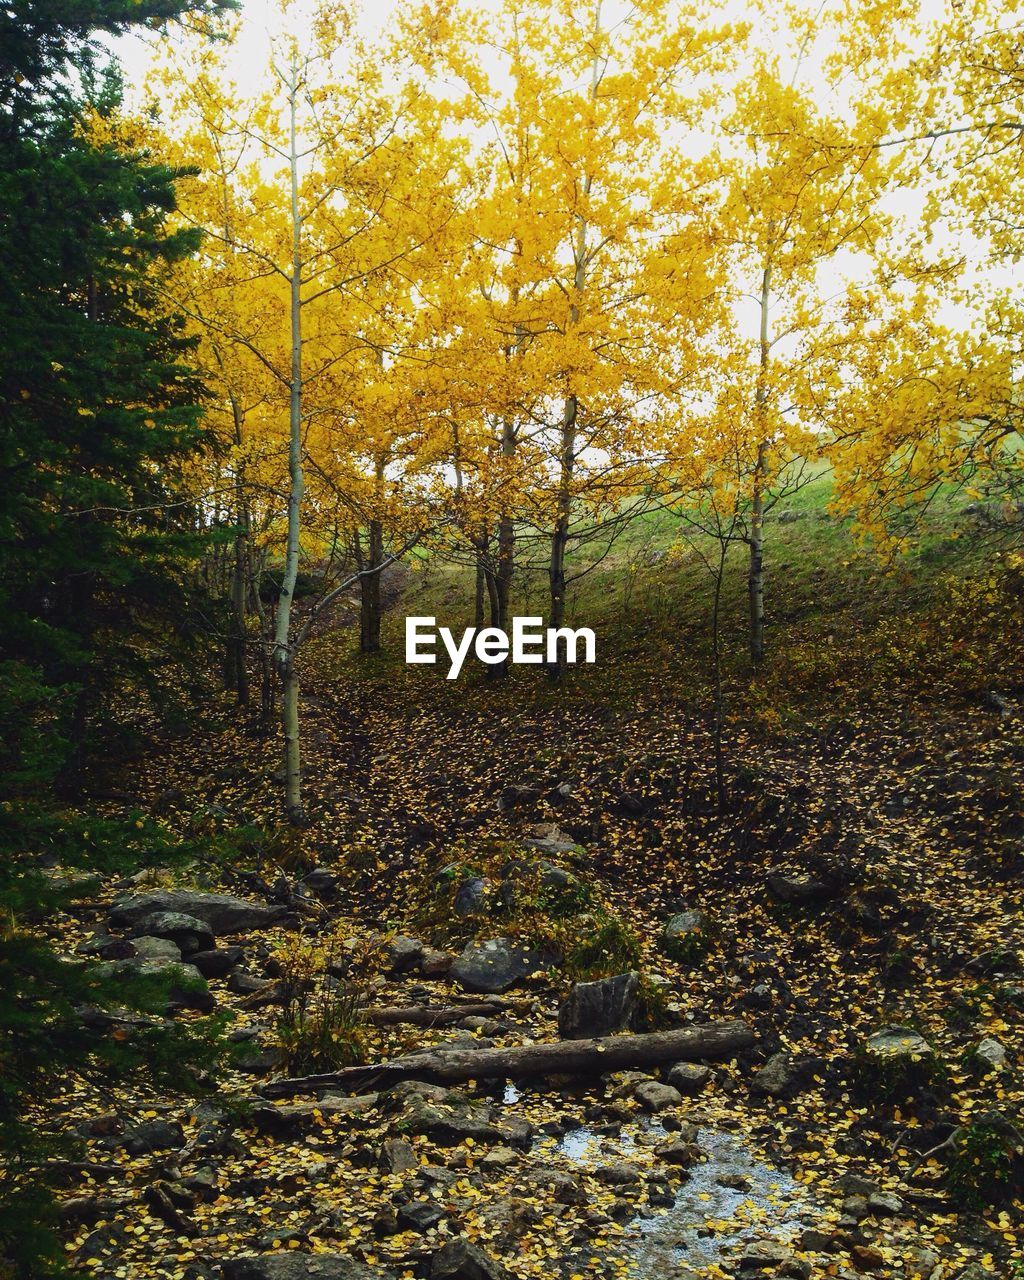 autumn, forest, nature, tree, tranquility, tranquil scene, scenics, change, beauty in nature, leaf, landscape, non-urban scene, outdoors, yellow, no people, day, travel destinations, growth, water, sky